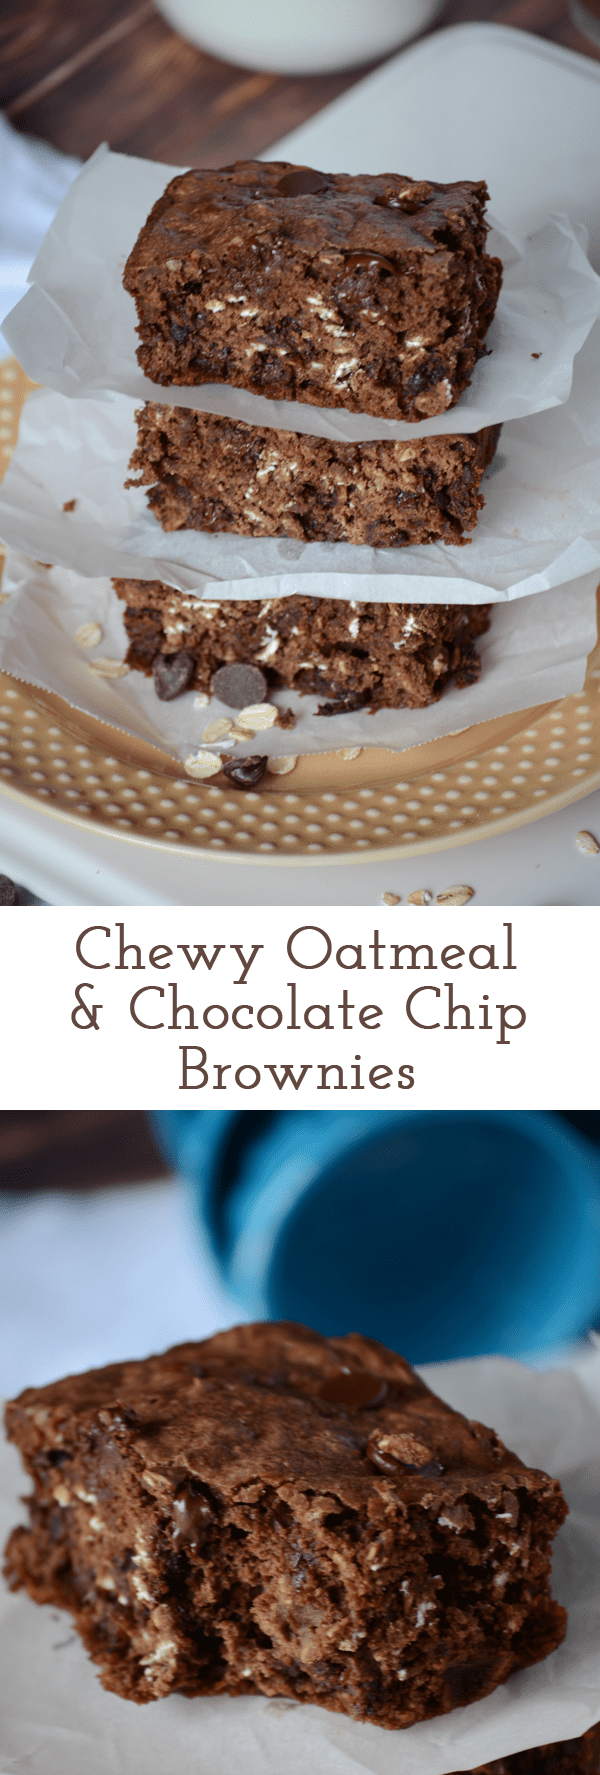 Chewy oatmeal and chocolate chip brownies!  These are so good and perfect for sharing